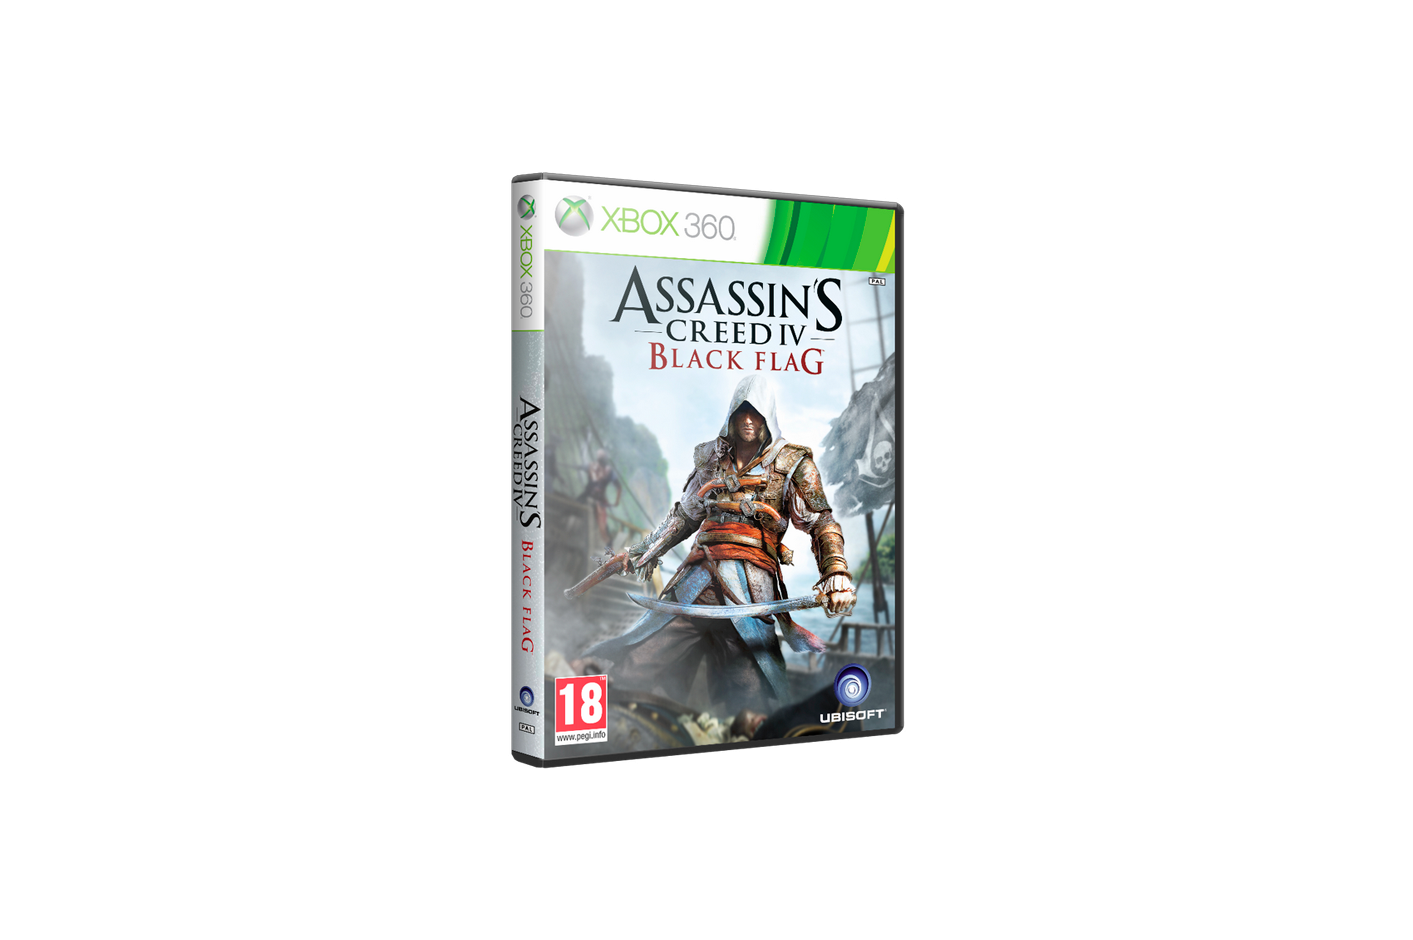 Xbox 360 Assassin's Creed IV. Черный флаг (Classics) Xbox 360